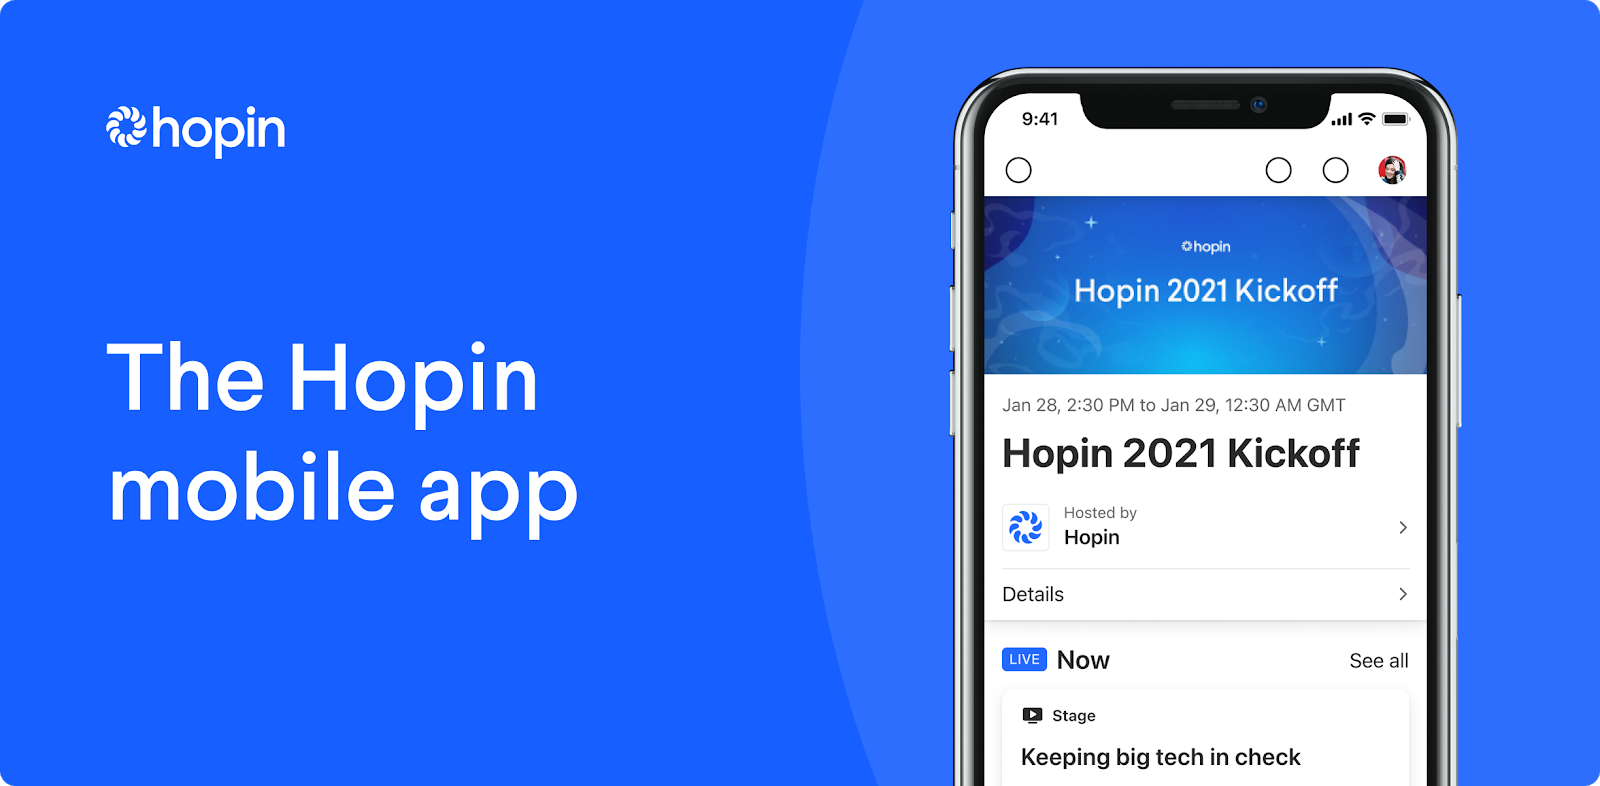 The Hopin mobile app makes it easy to engage your online and on-site audience for hybrid events. Now available on iOS and Android.